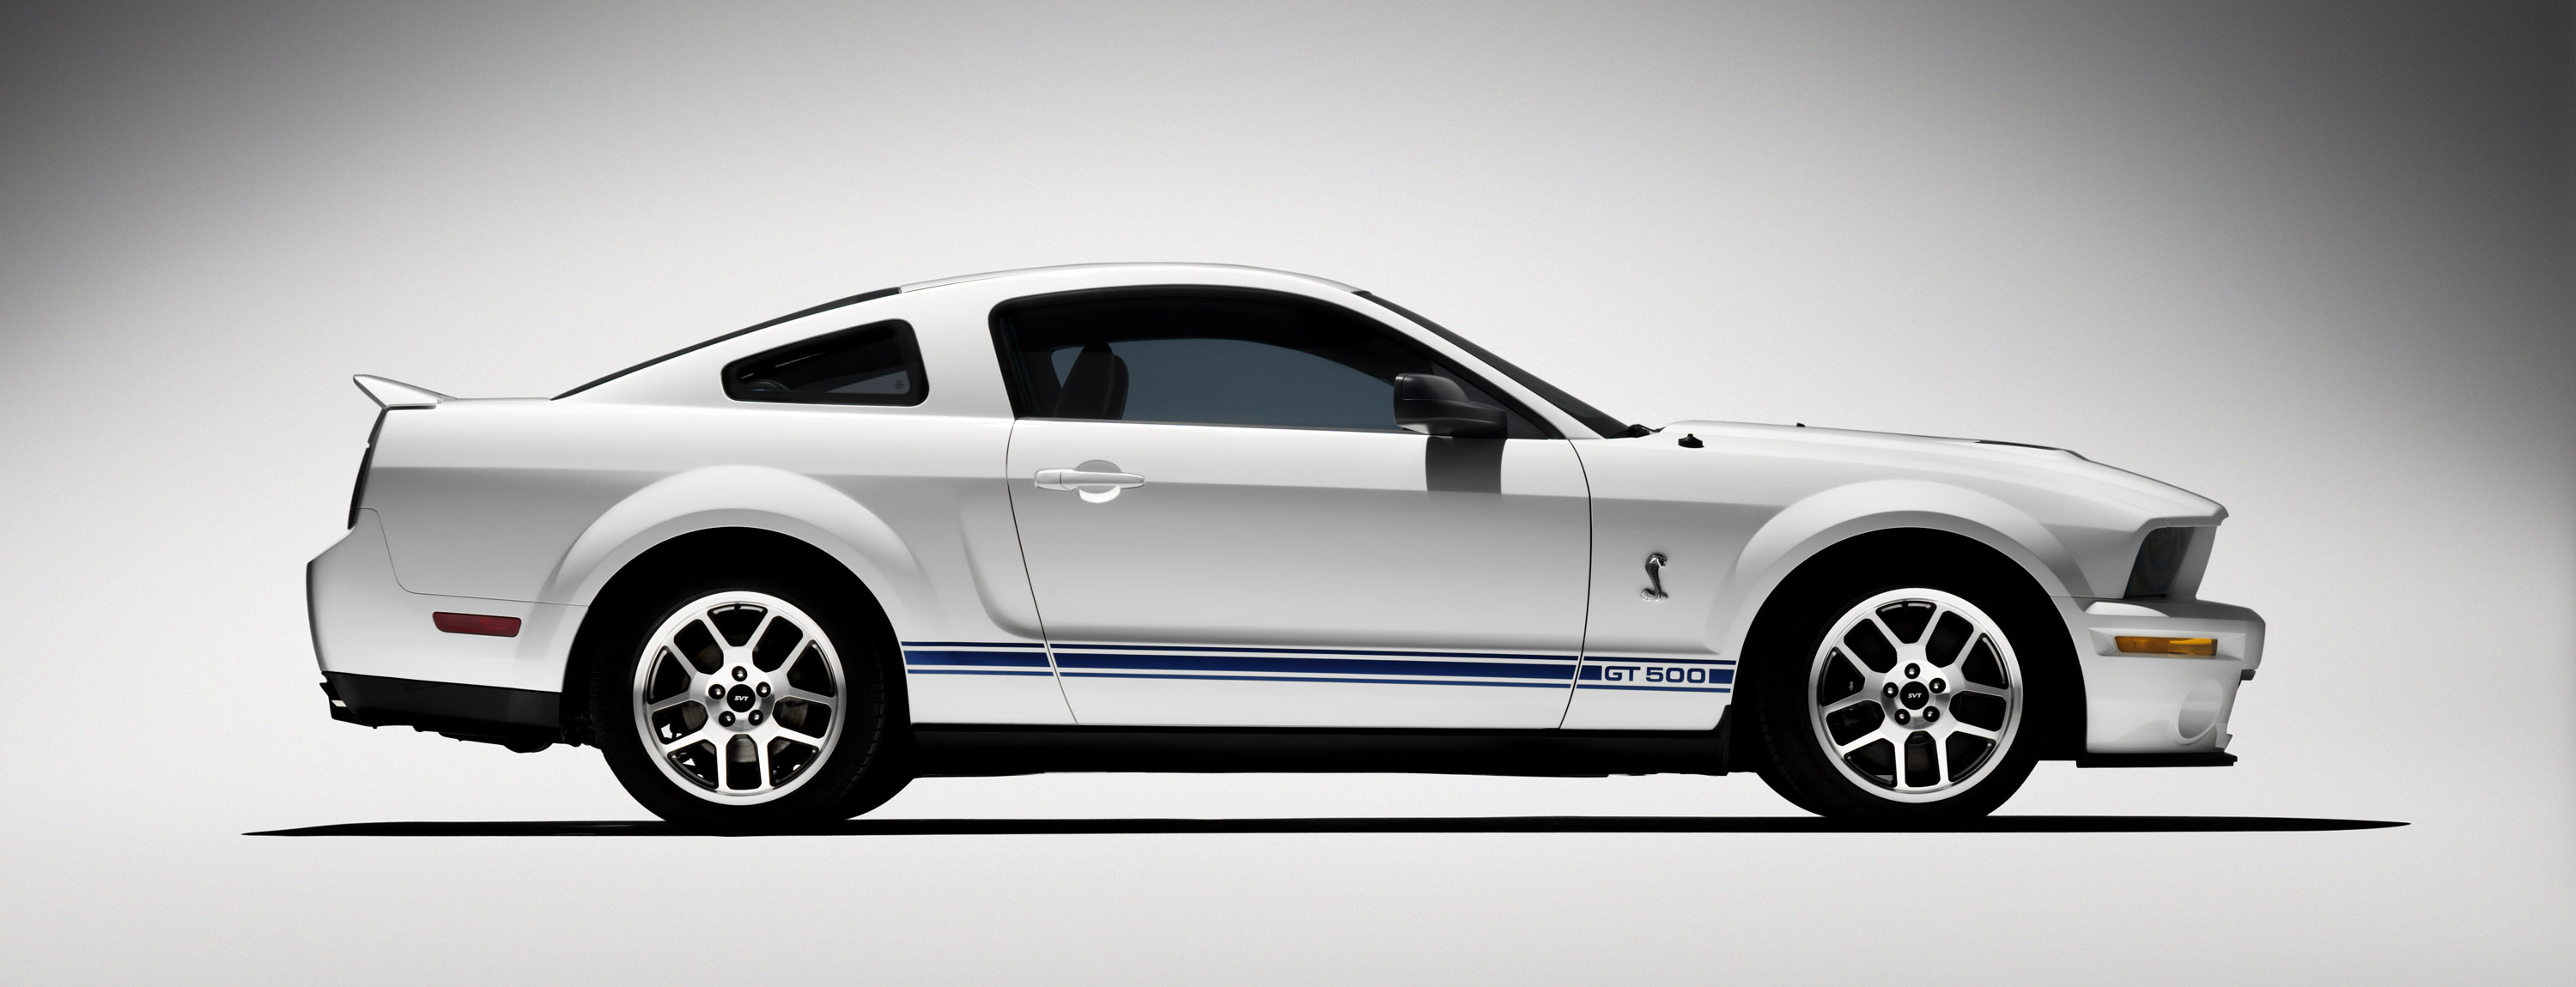 2007 ford mustang shelby gt500 review top speed. Black Bedroom Furniture Sets. Home Design Ideas